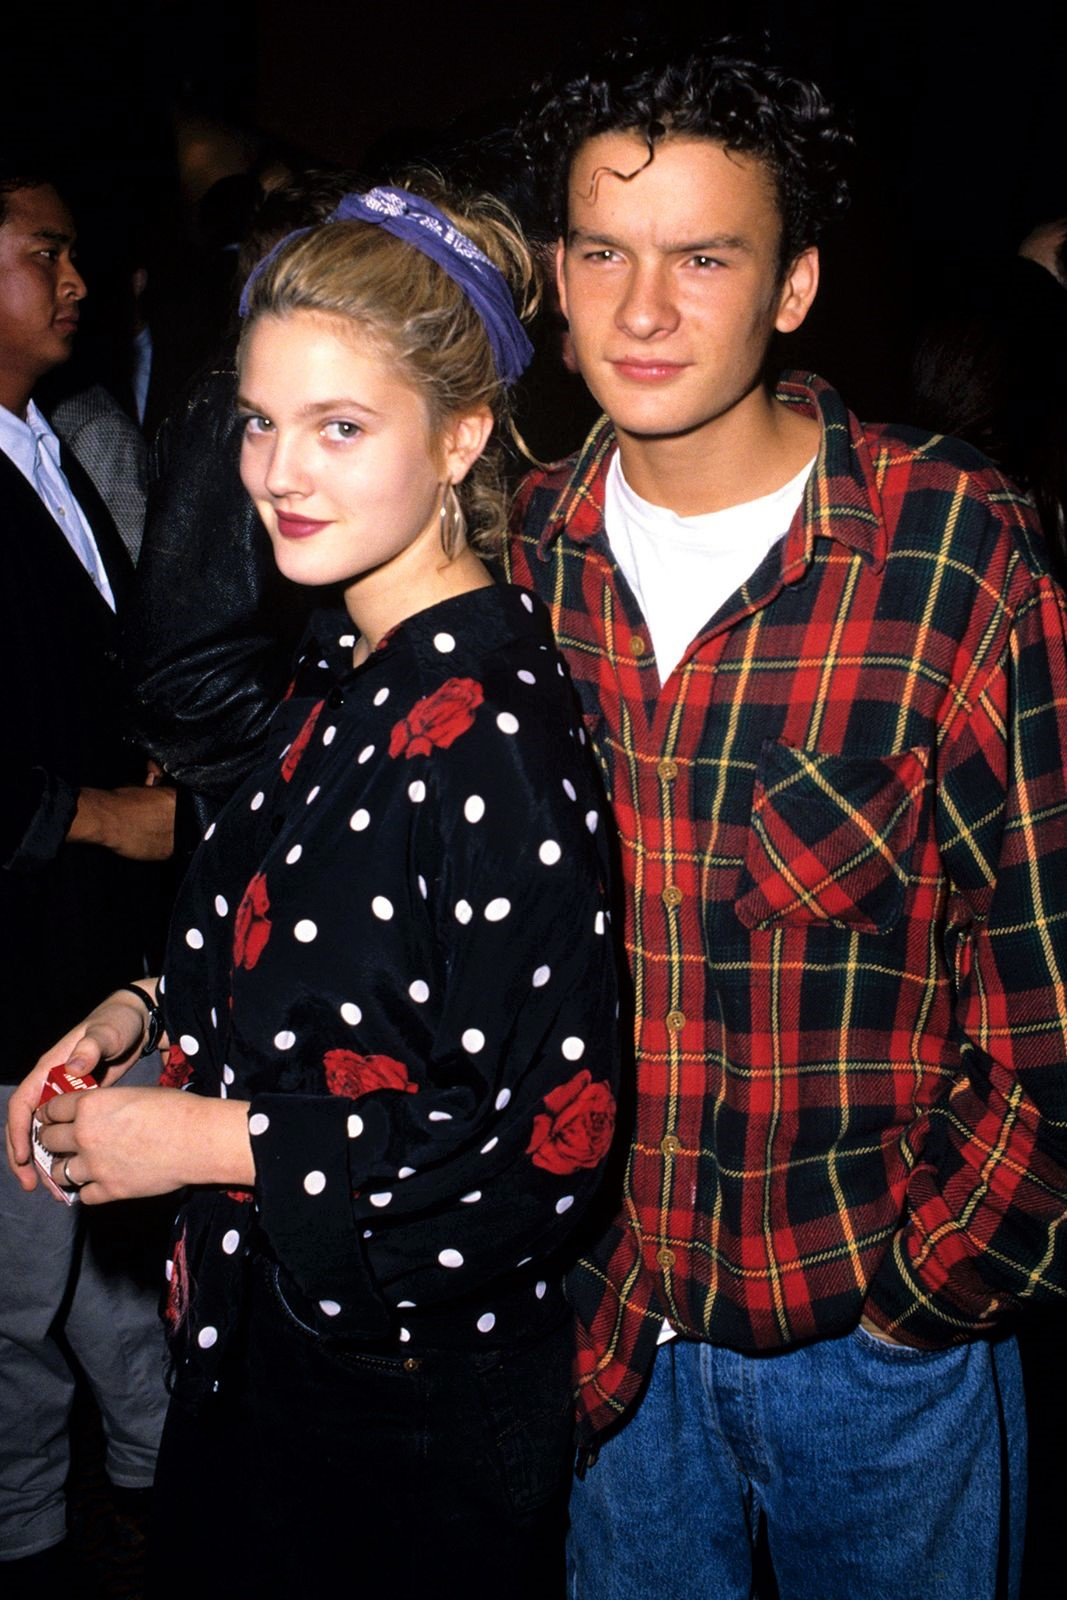 Drew Barrymore and Balthazar Getty at an event for Pacific Heights (1990)